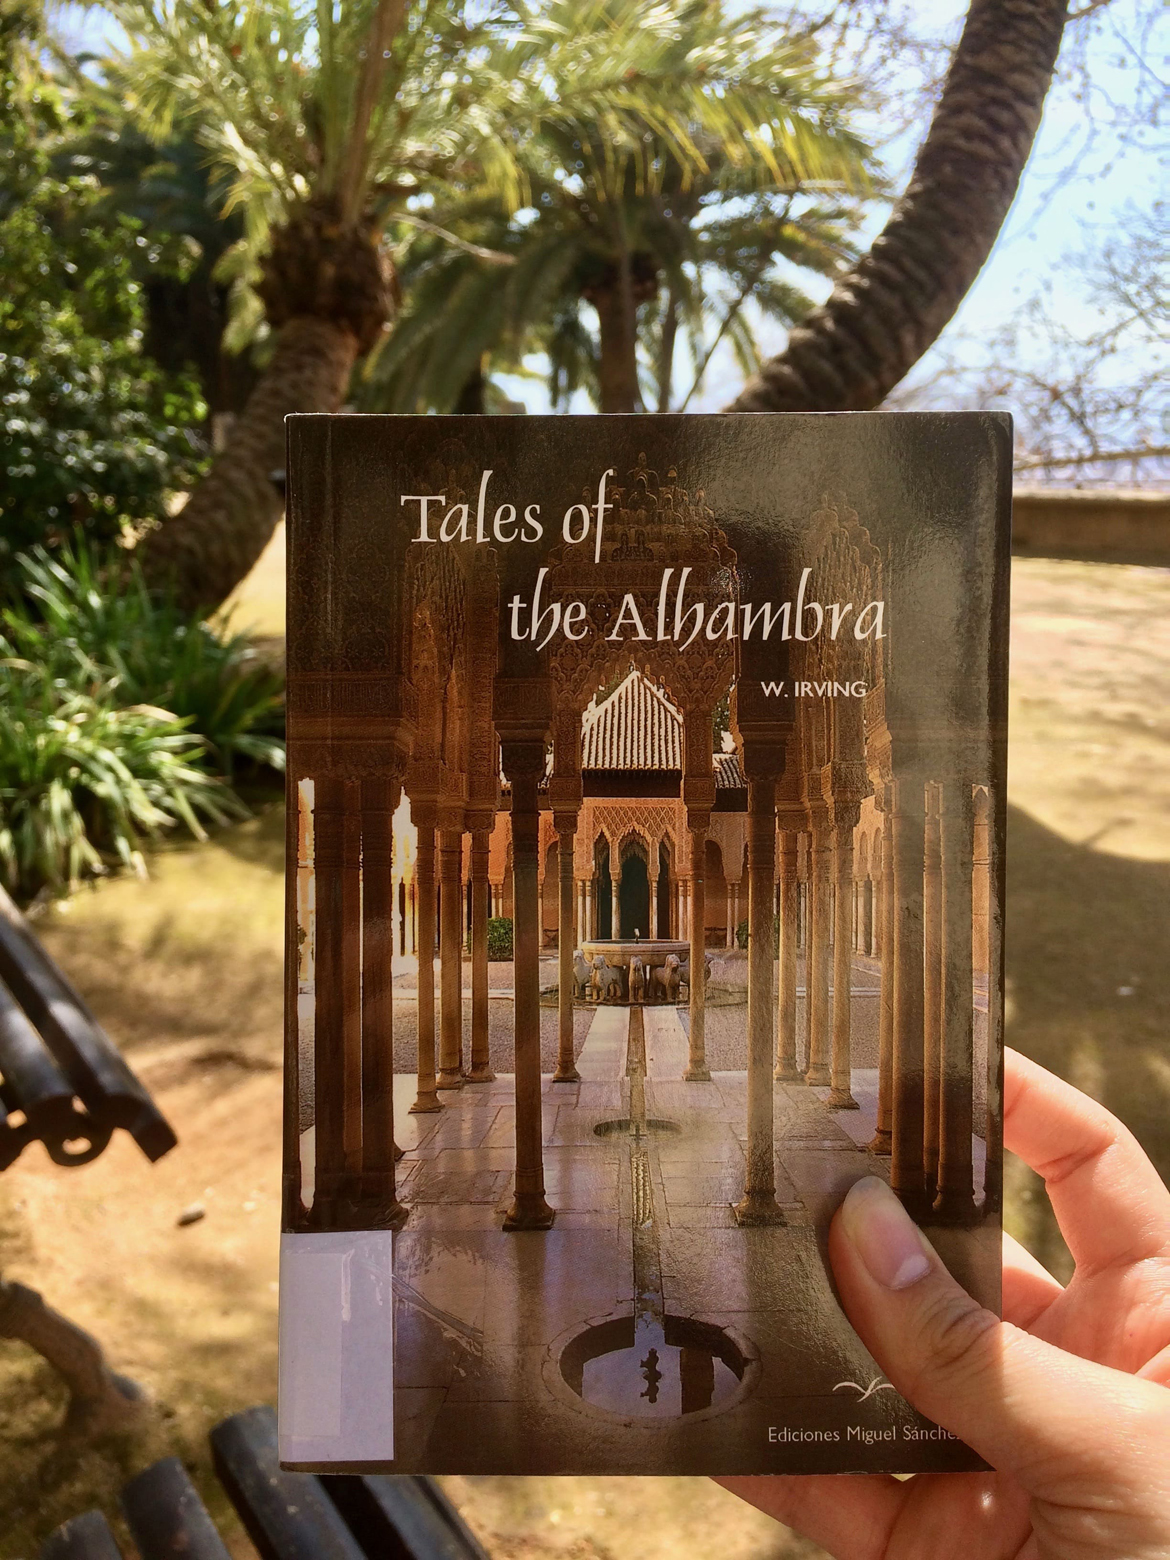 Book at the Alhambra